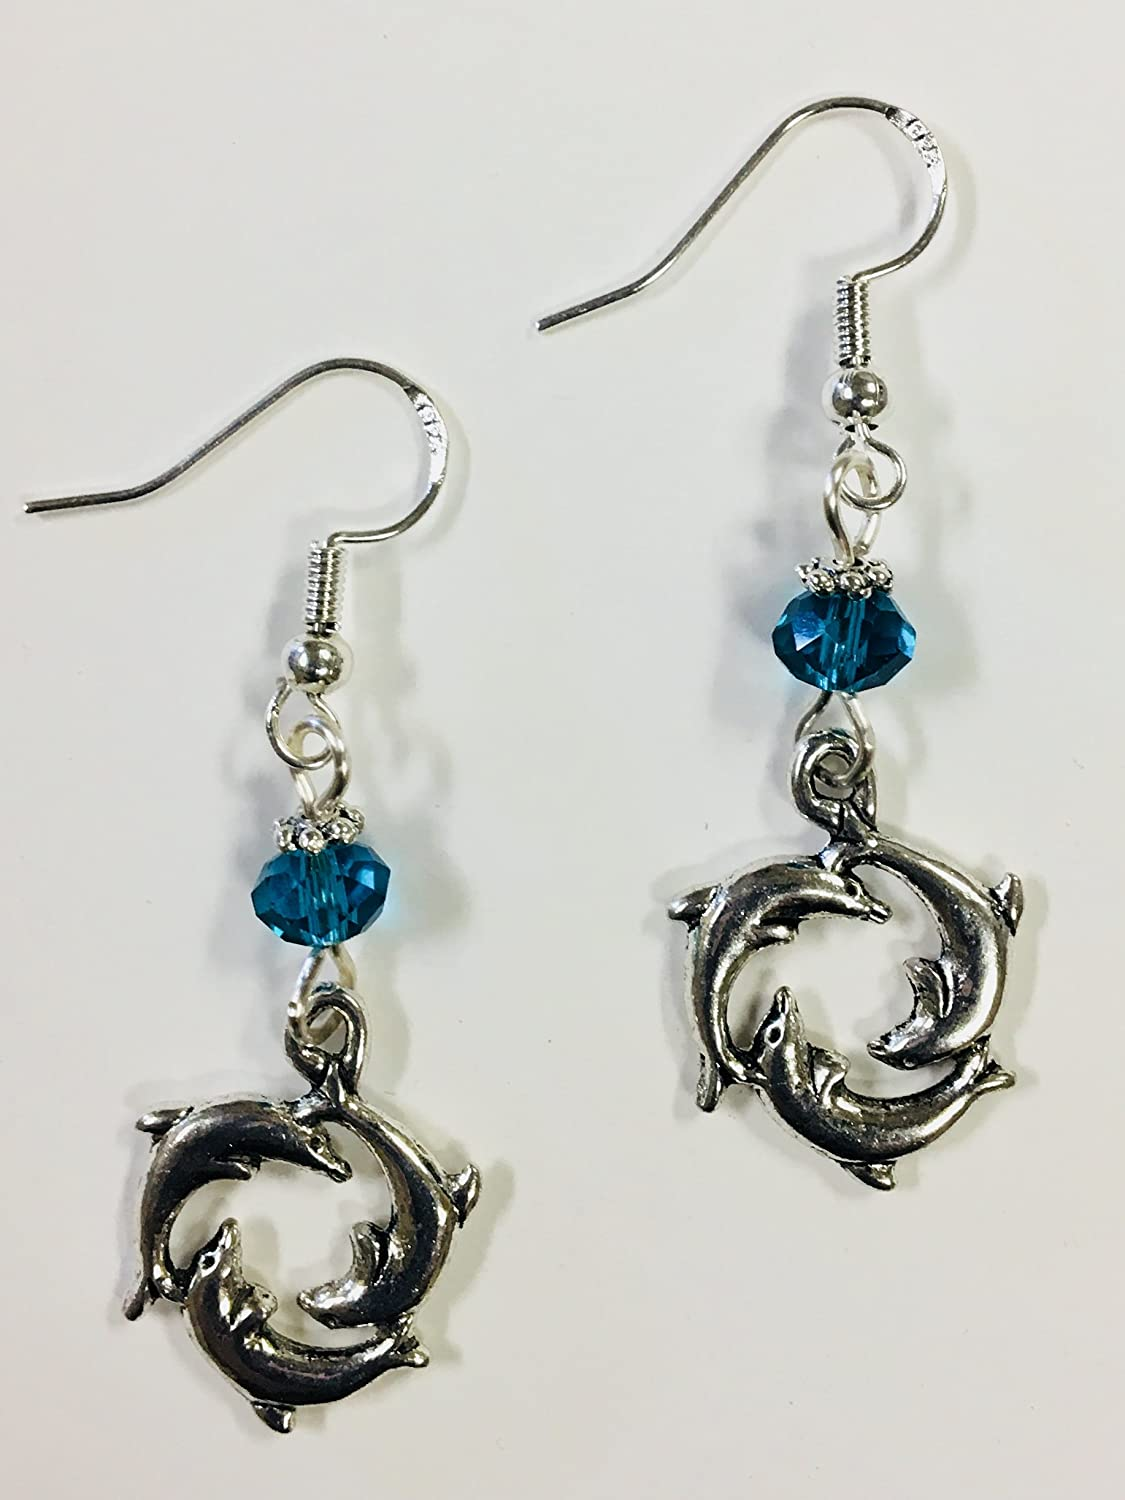 Circle of Dolphin Sealife Earrings, perfect for the beach and marine lover! Delta Delta Delta mascot